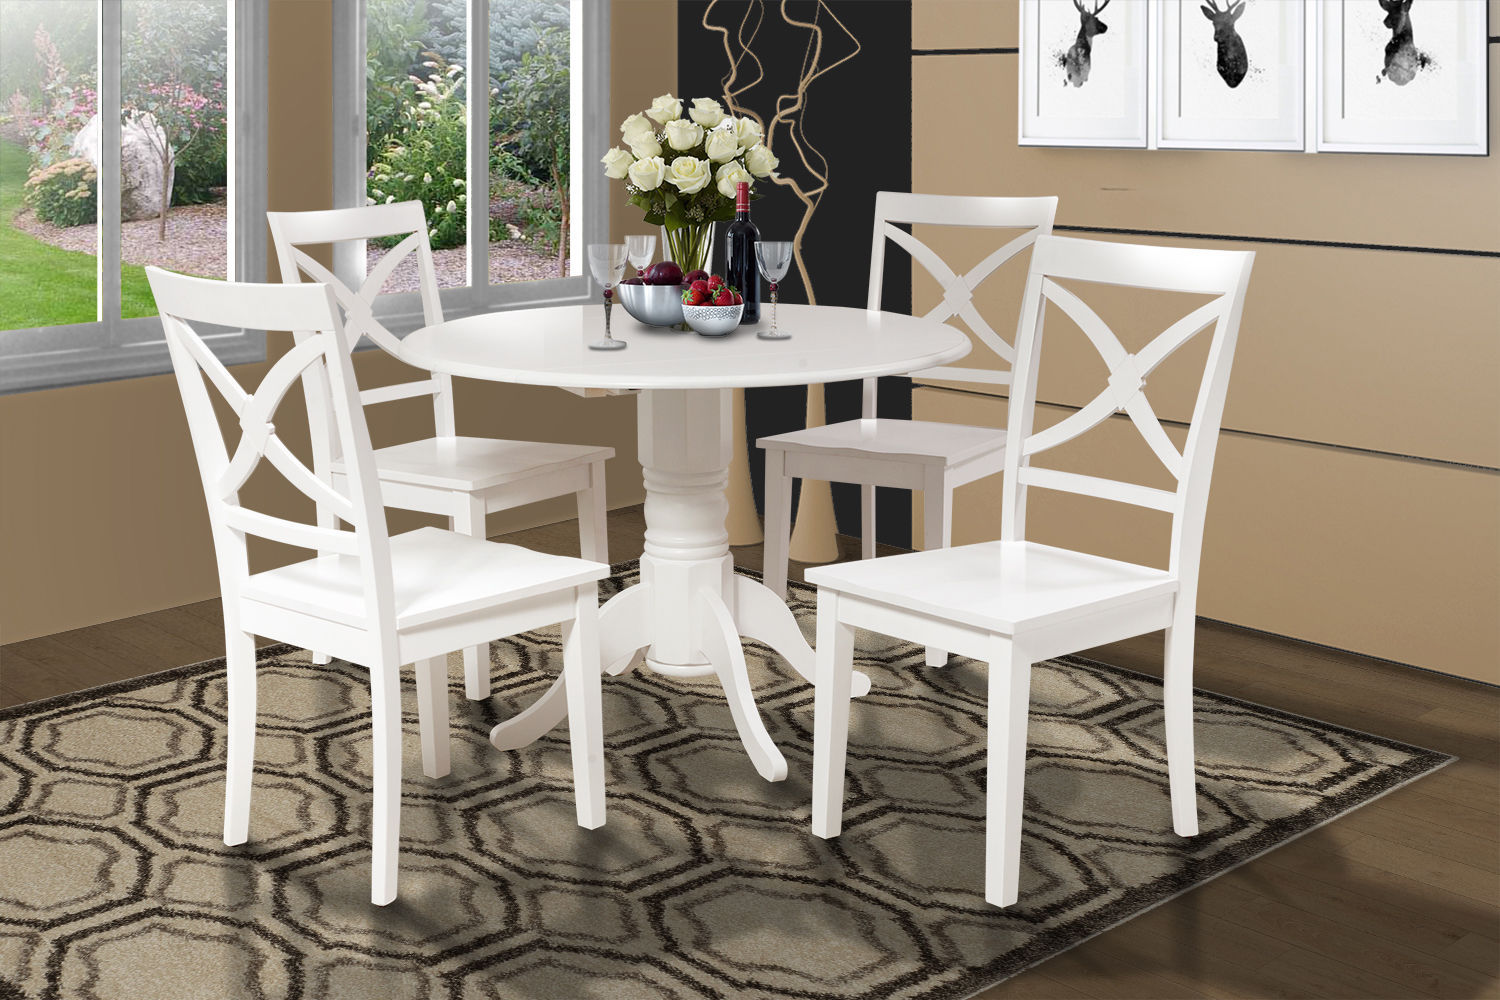 SET OF 4 KITCHEN DINING SIDE CHAIRS w/ WOODEN SEAT IN  WHITE